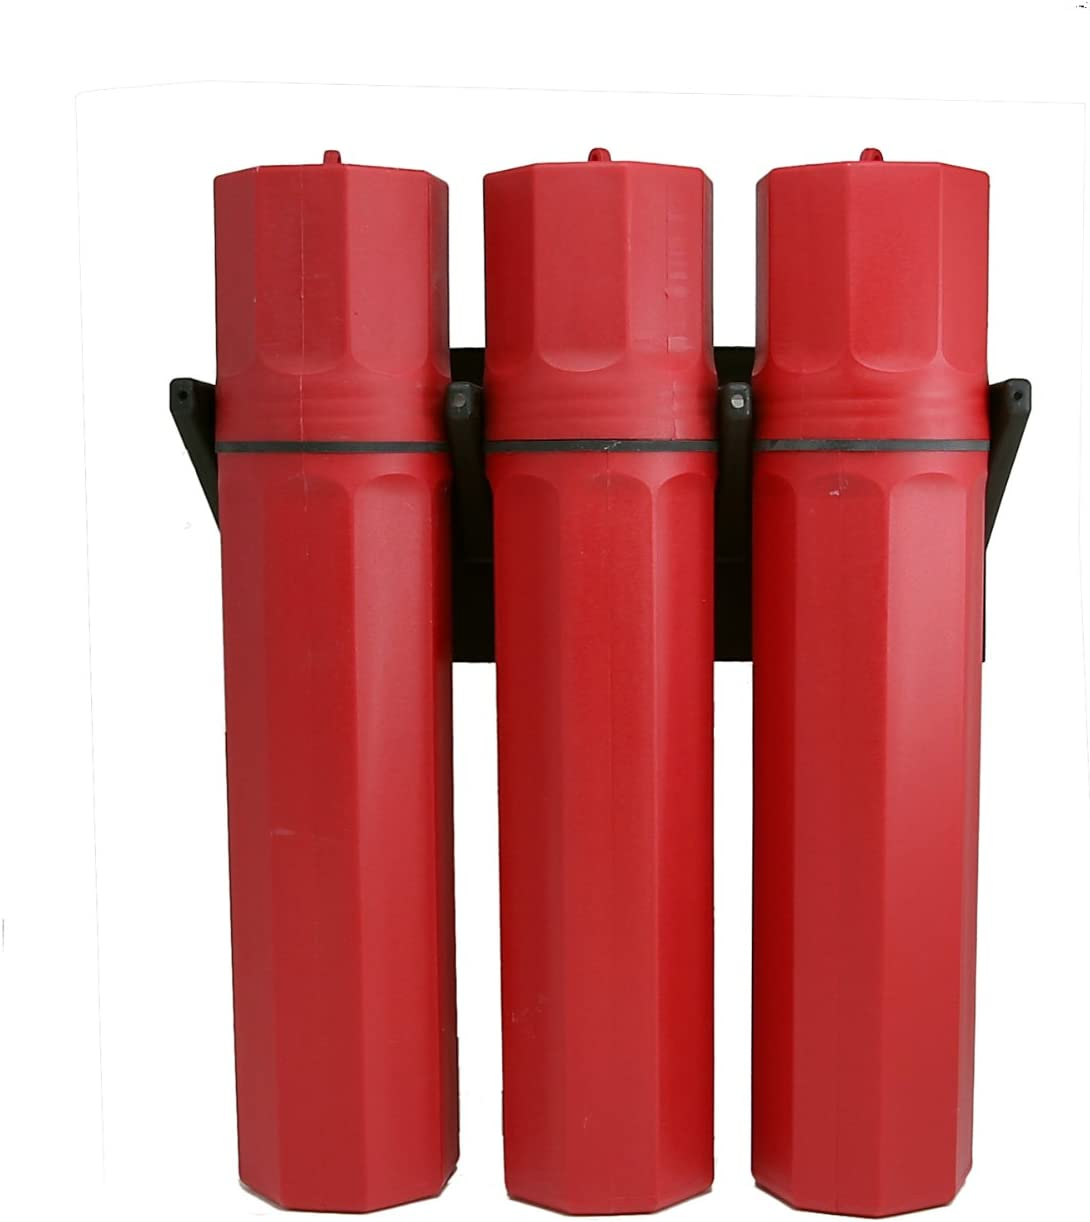 BAC Industries RK-301 Rod Keeper System Red 3-Pack